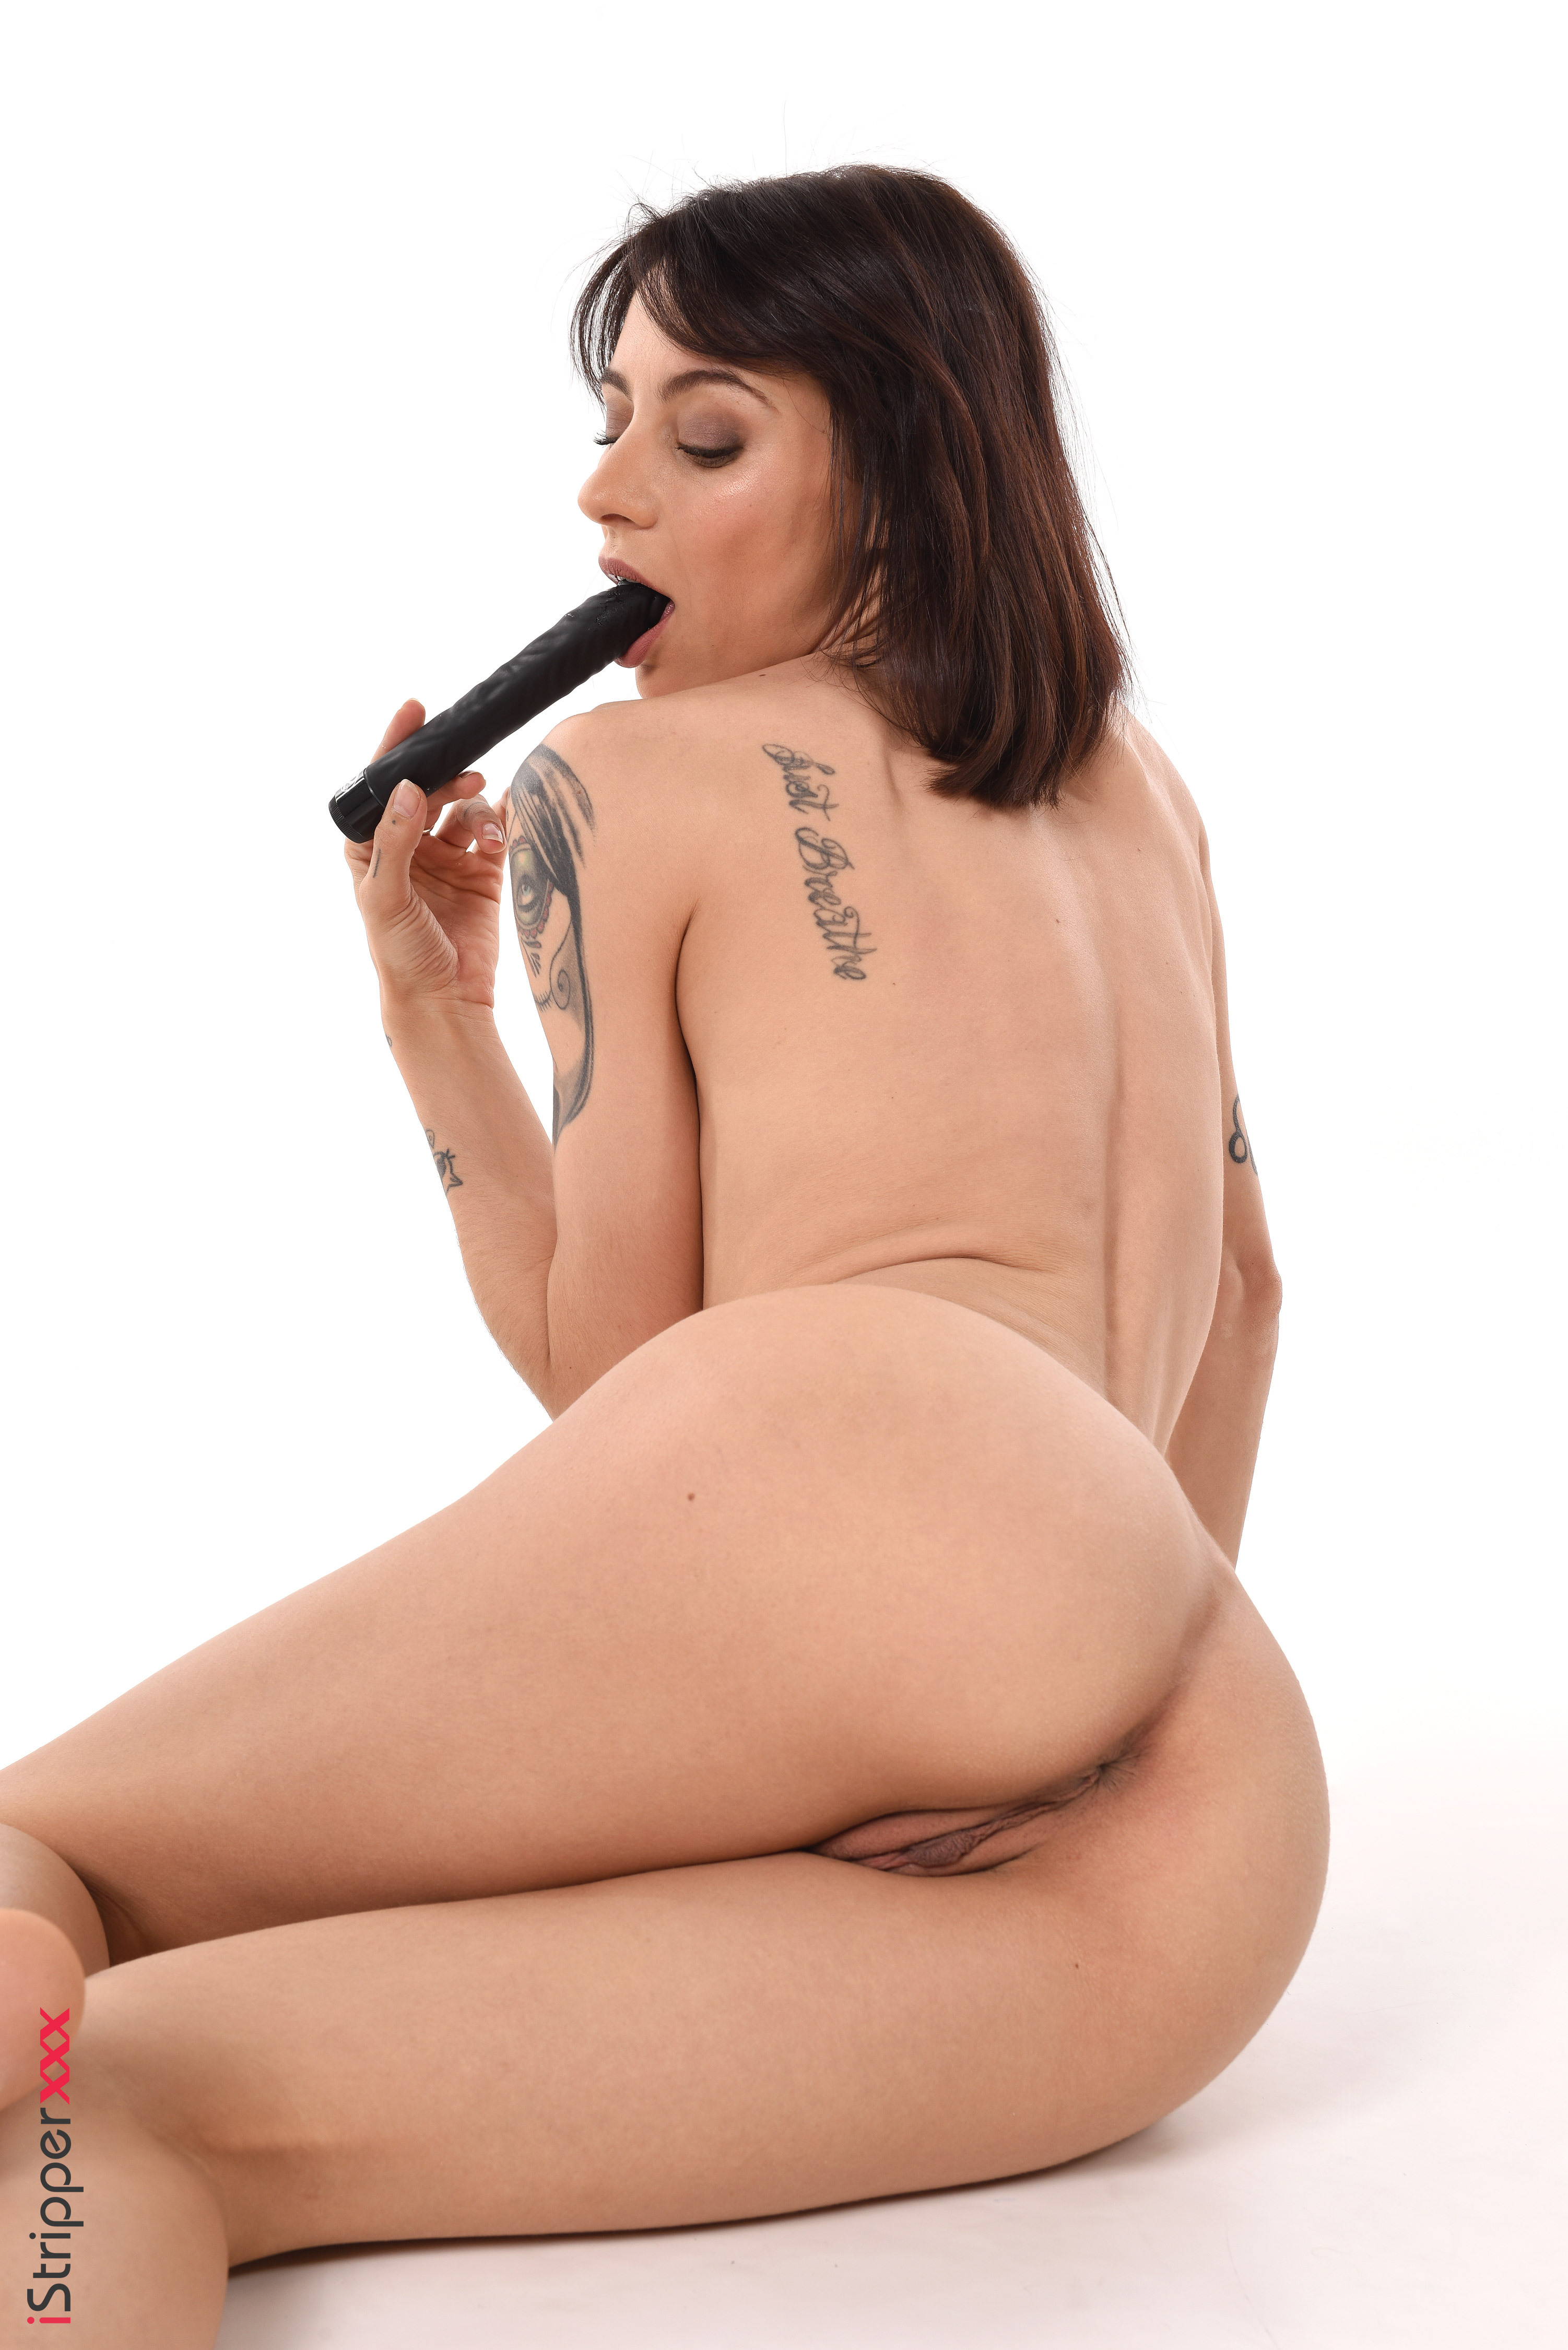 free live nude wallpaper